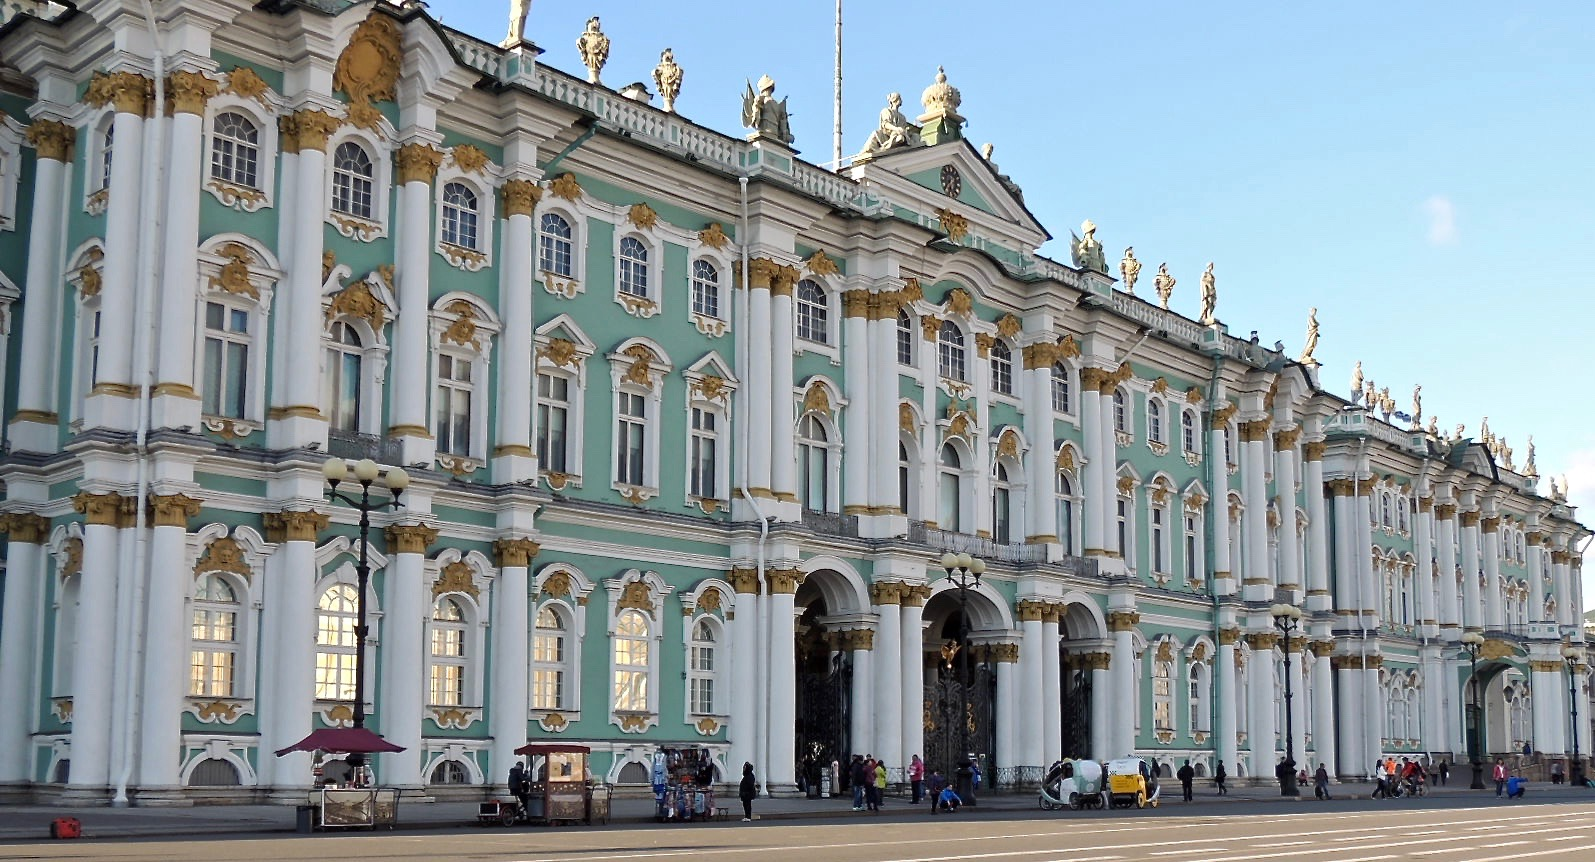 The Winter Palace and Hermitage Museum